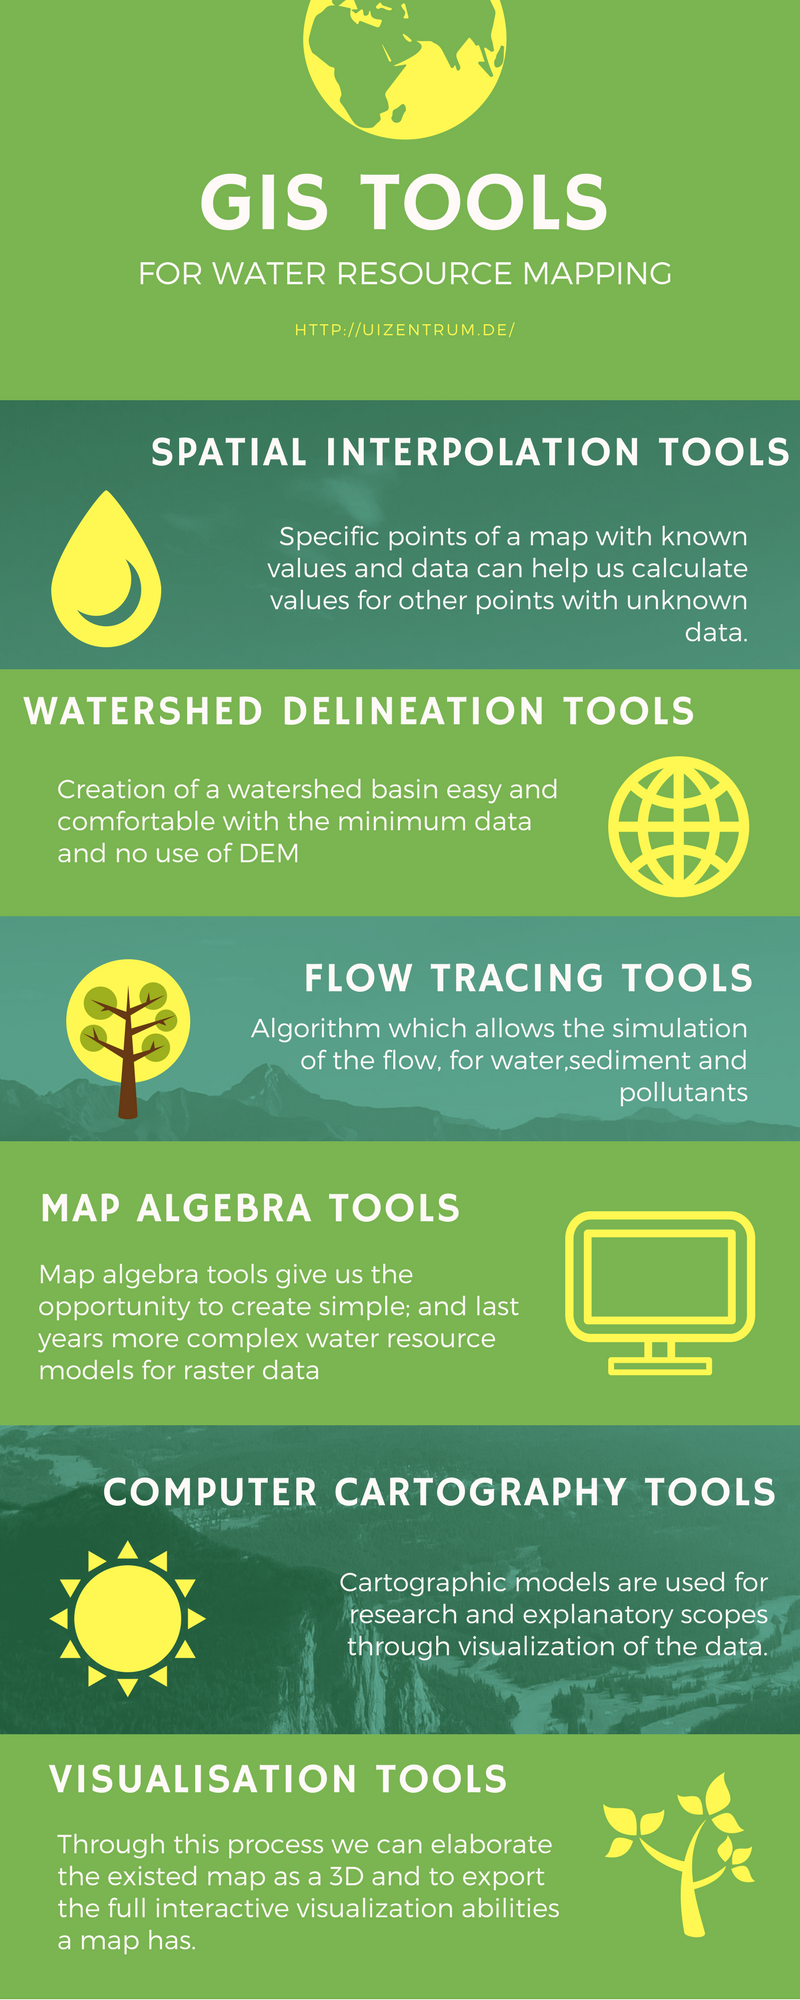 GIS for water resource mapping